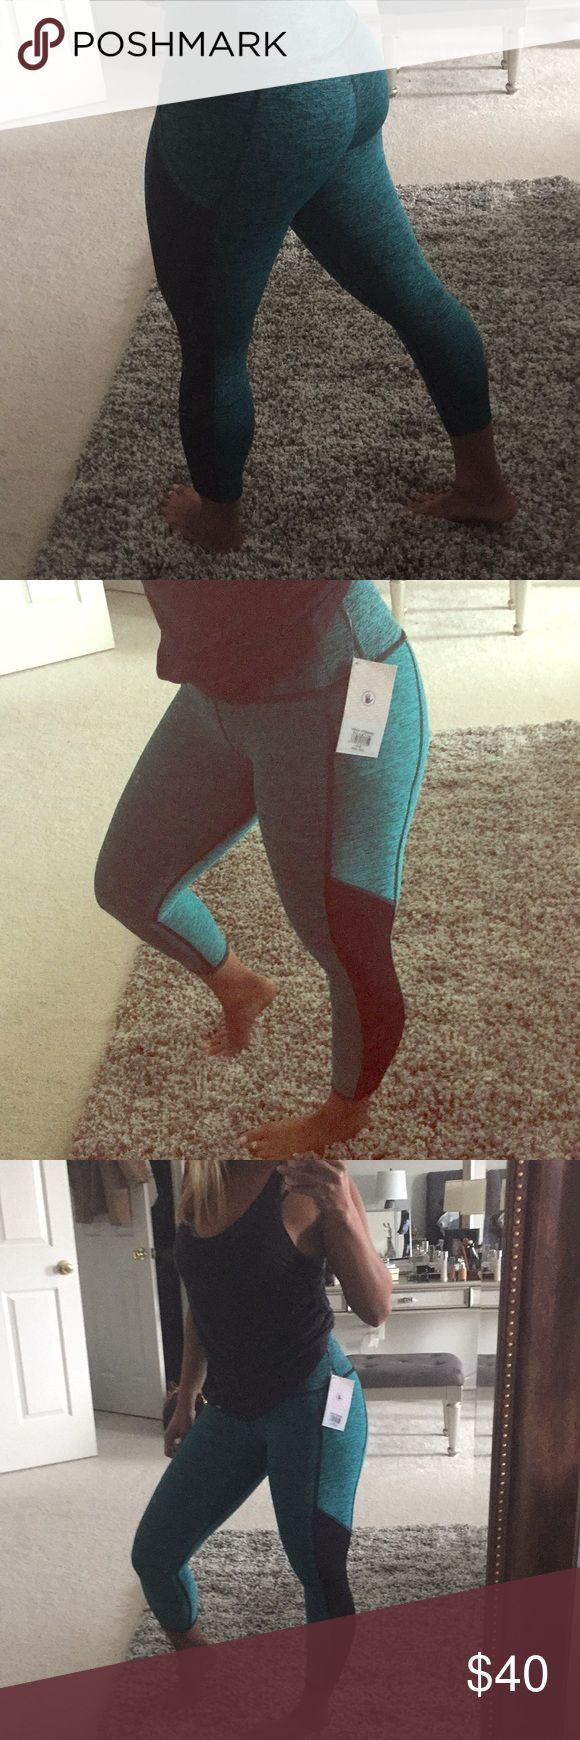 BODY GLOVE SPORT MINT APEX CAPRI LEGGINGS S Brand new with tags. So flattering and hugs you in the right places.  Love this but I'm just not into the mesh design.  I'm 5'2 for length reference. My favorite brand of gym leggings! Body Glove Pants Capris